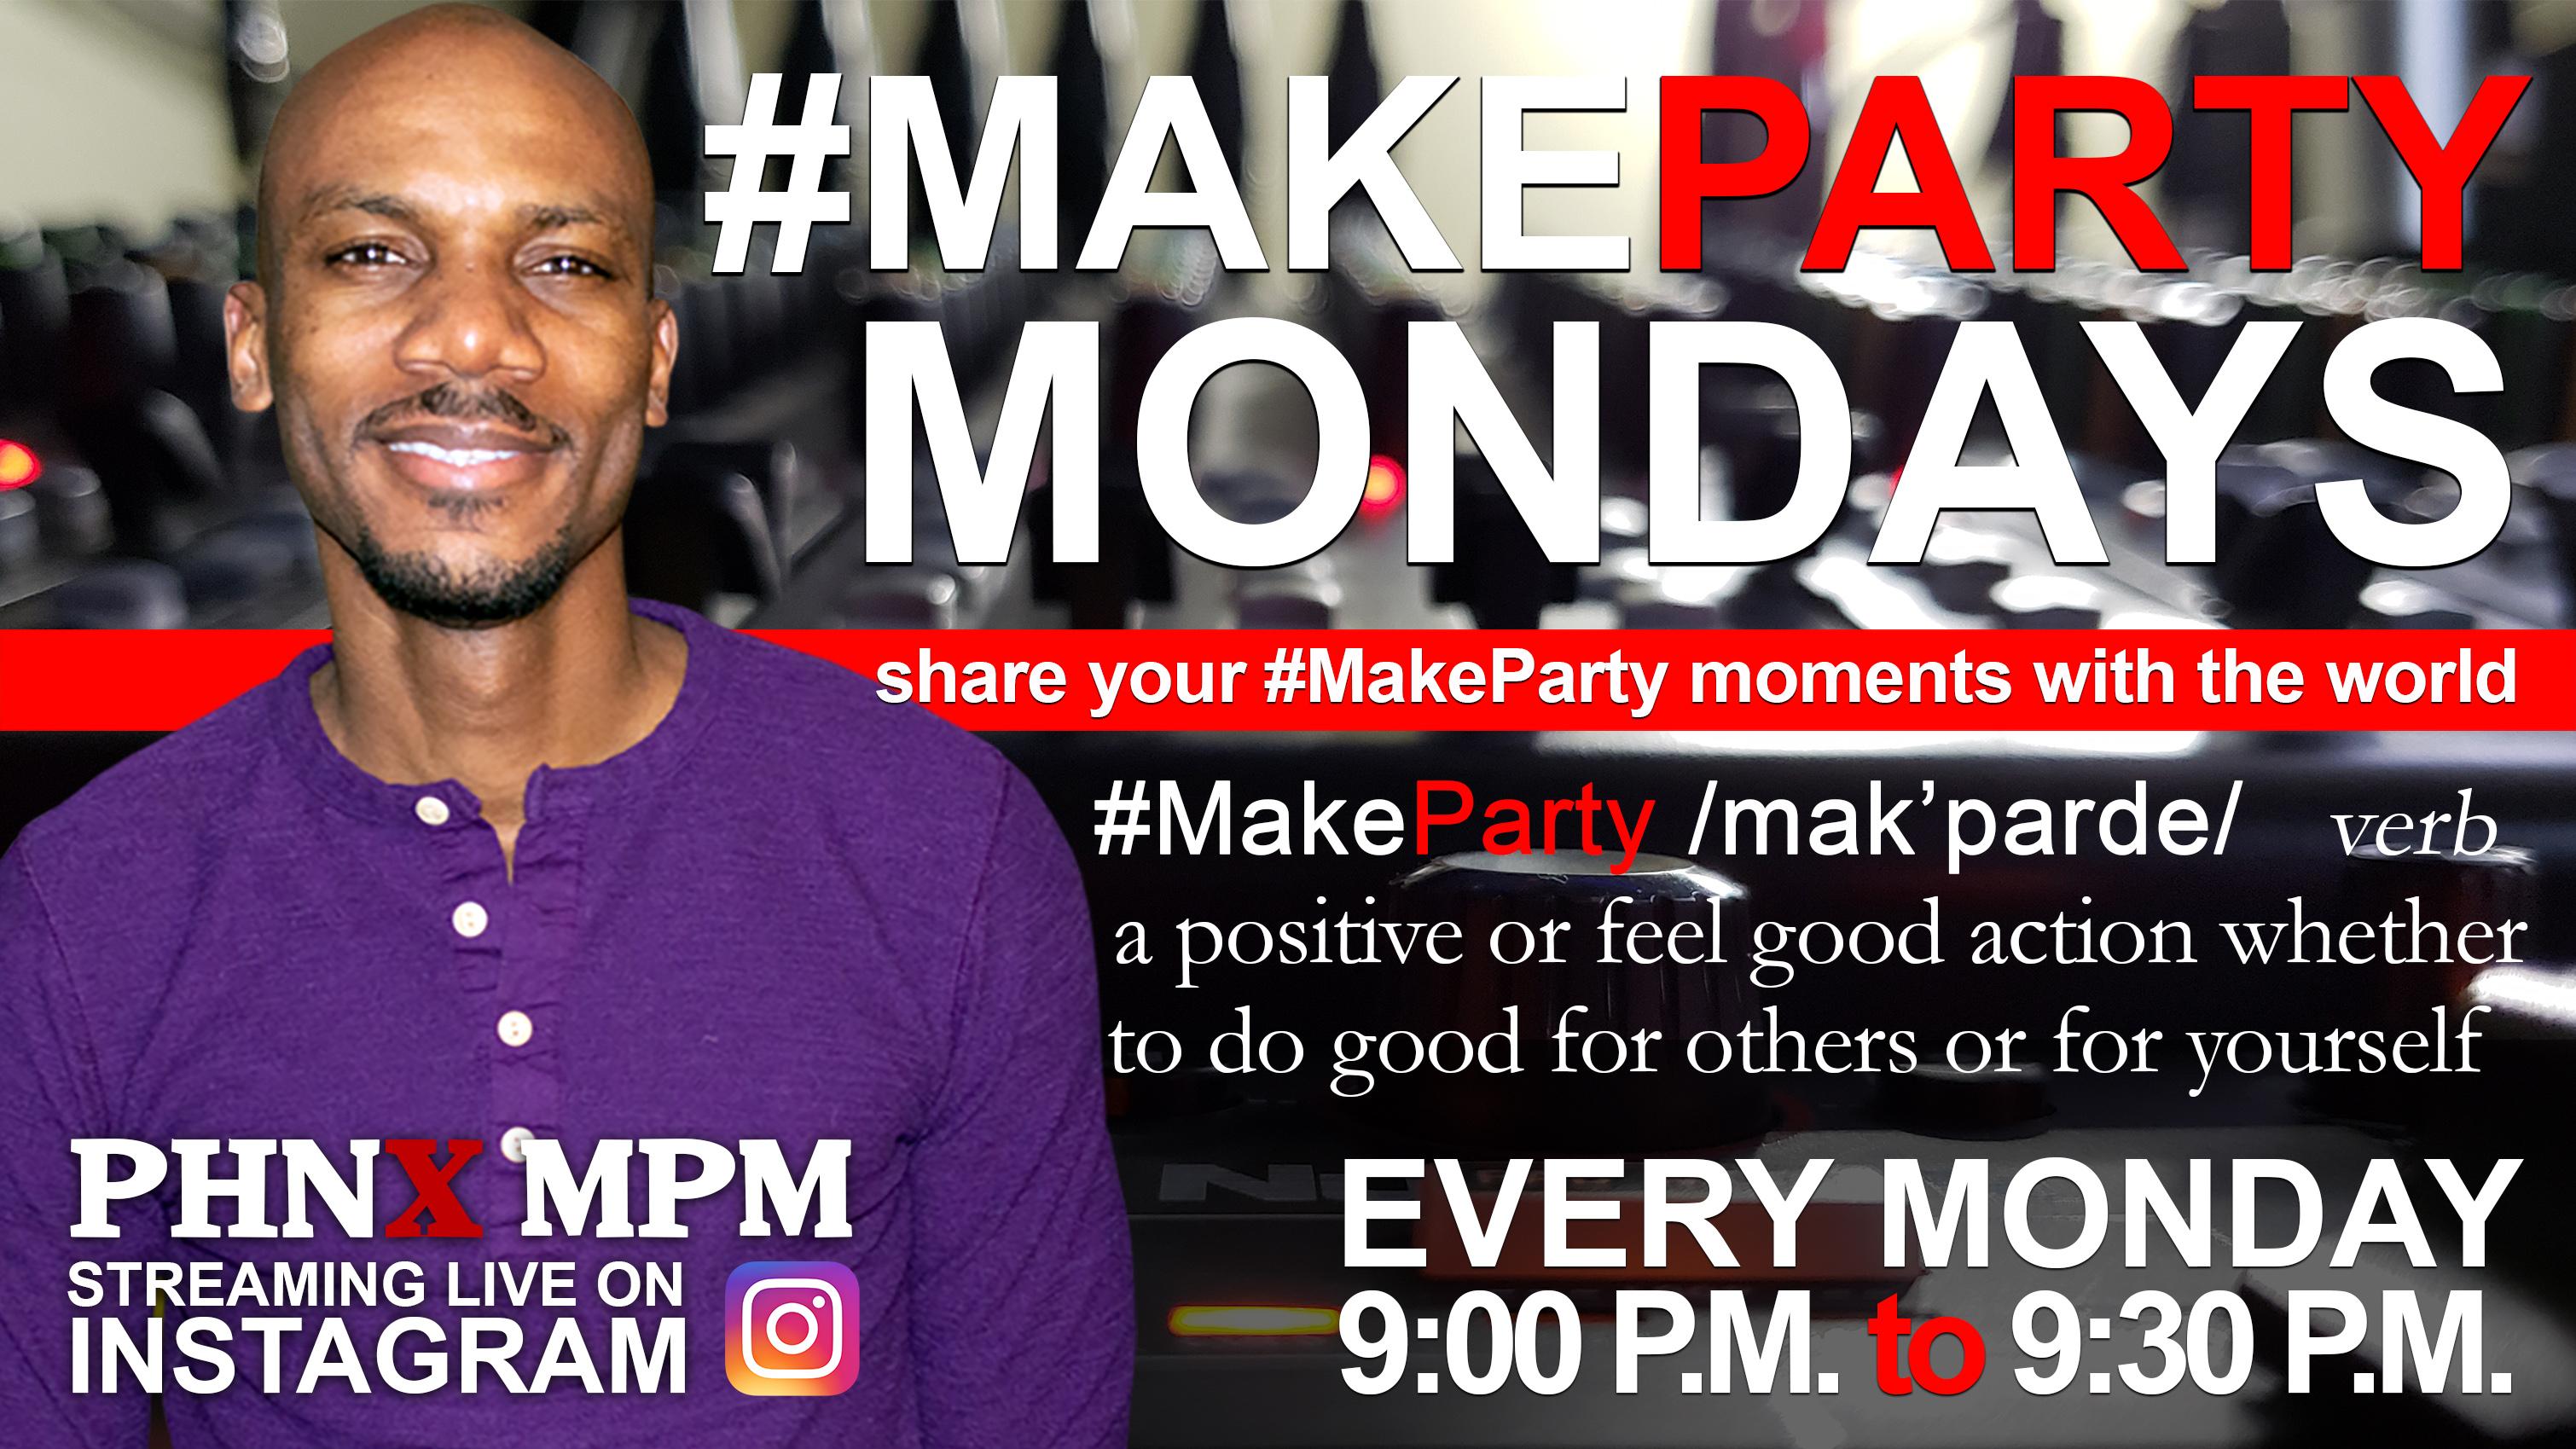 Make Party Mondays